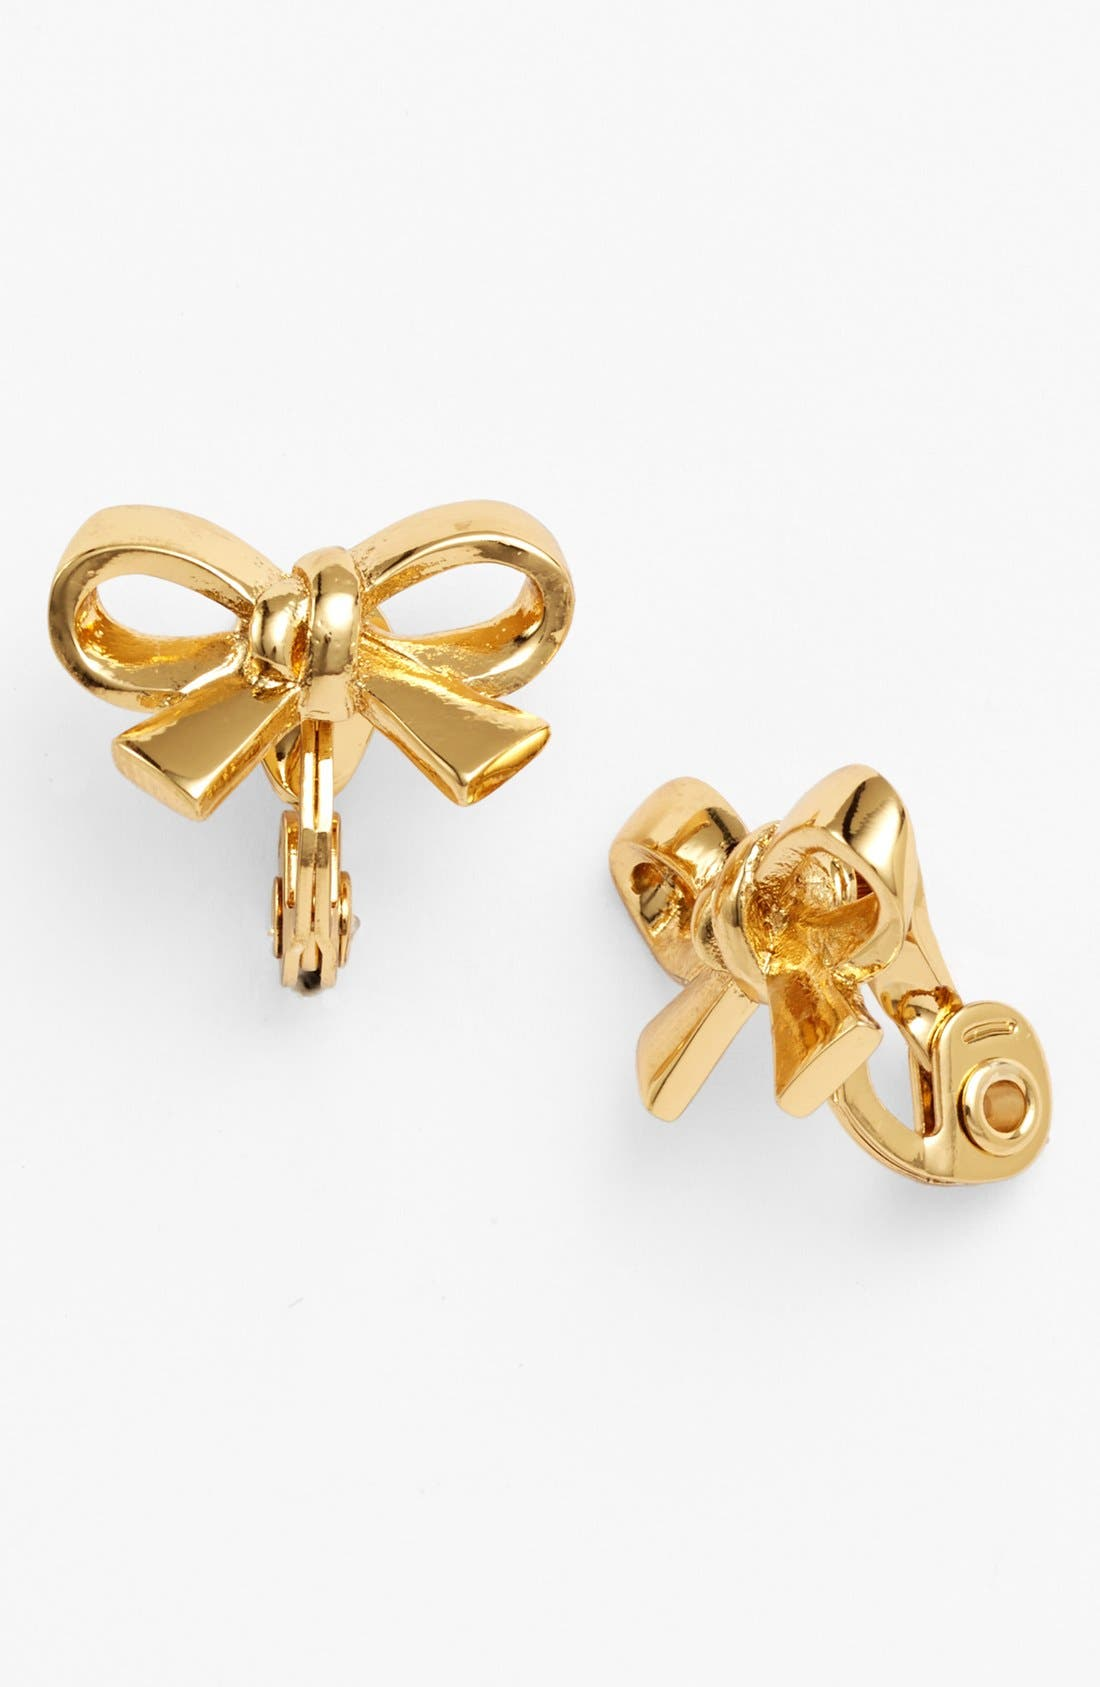 Main Image - kate spade new york 'finishing touch' bow clip earrings